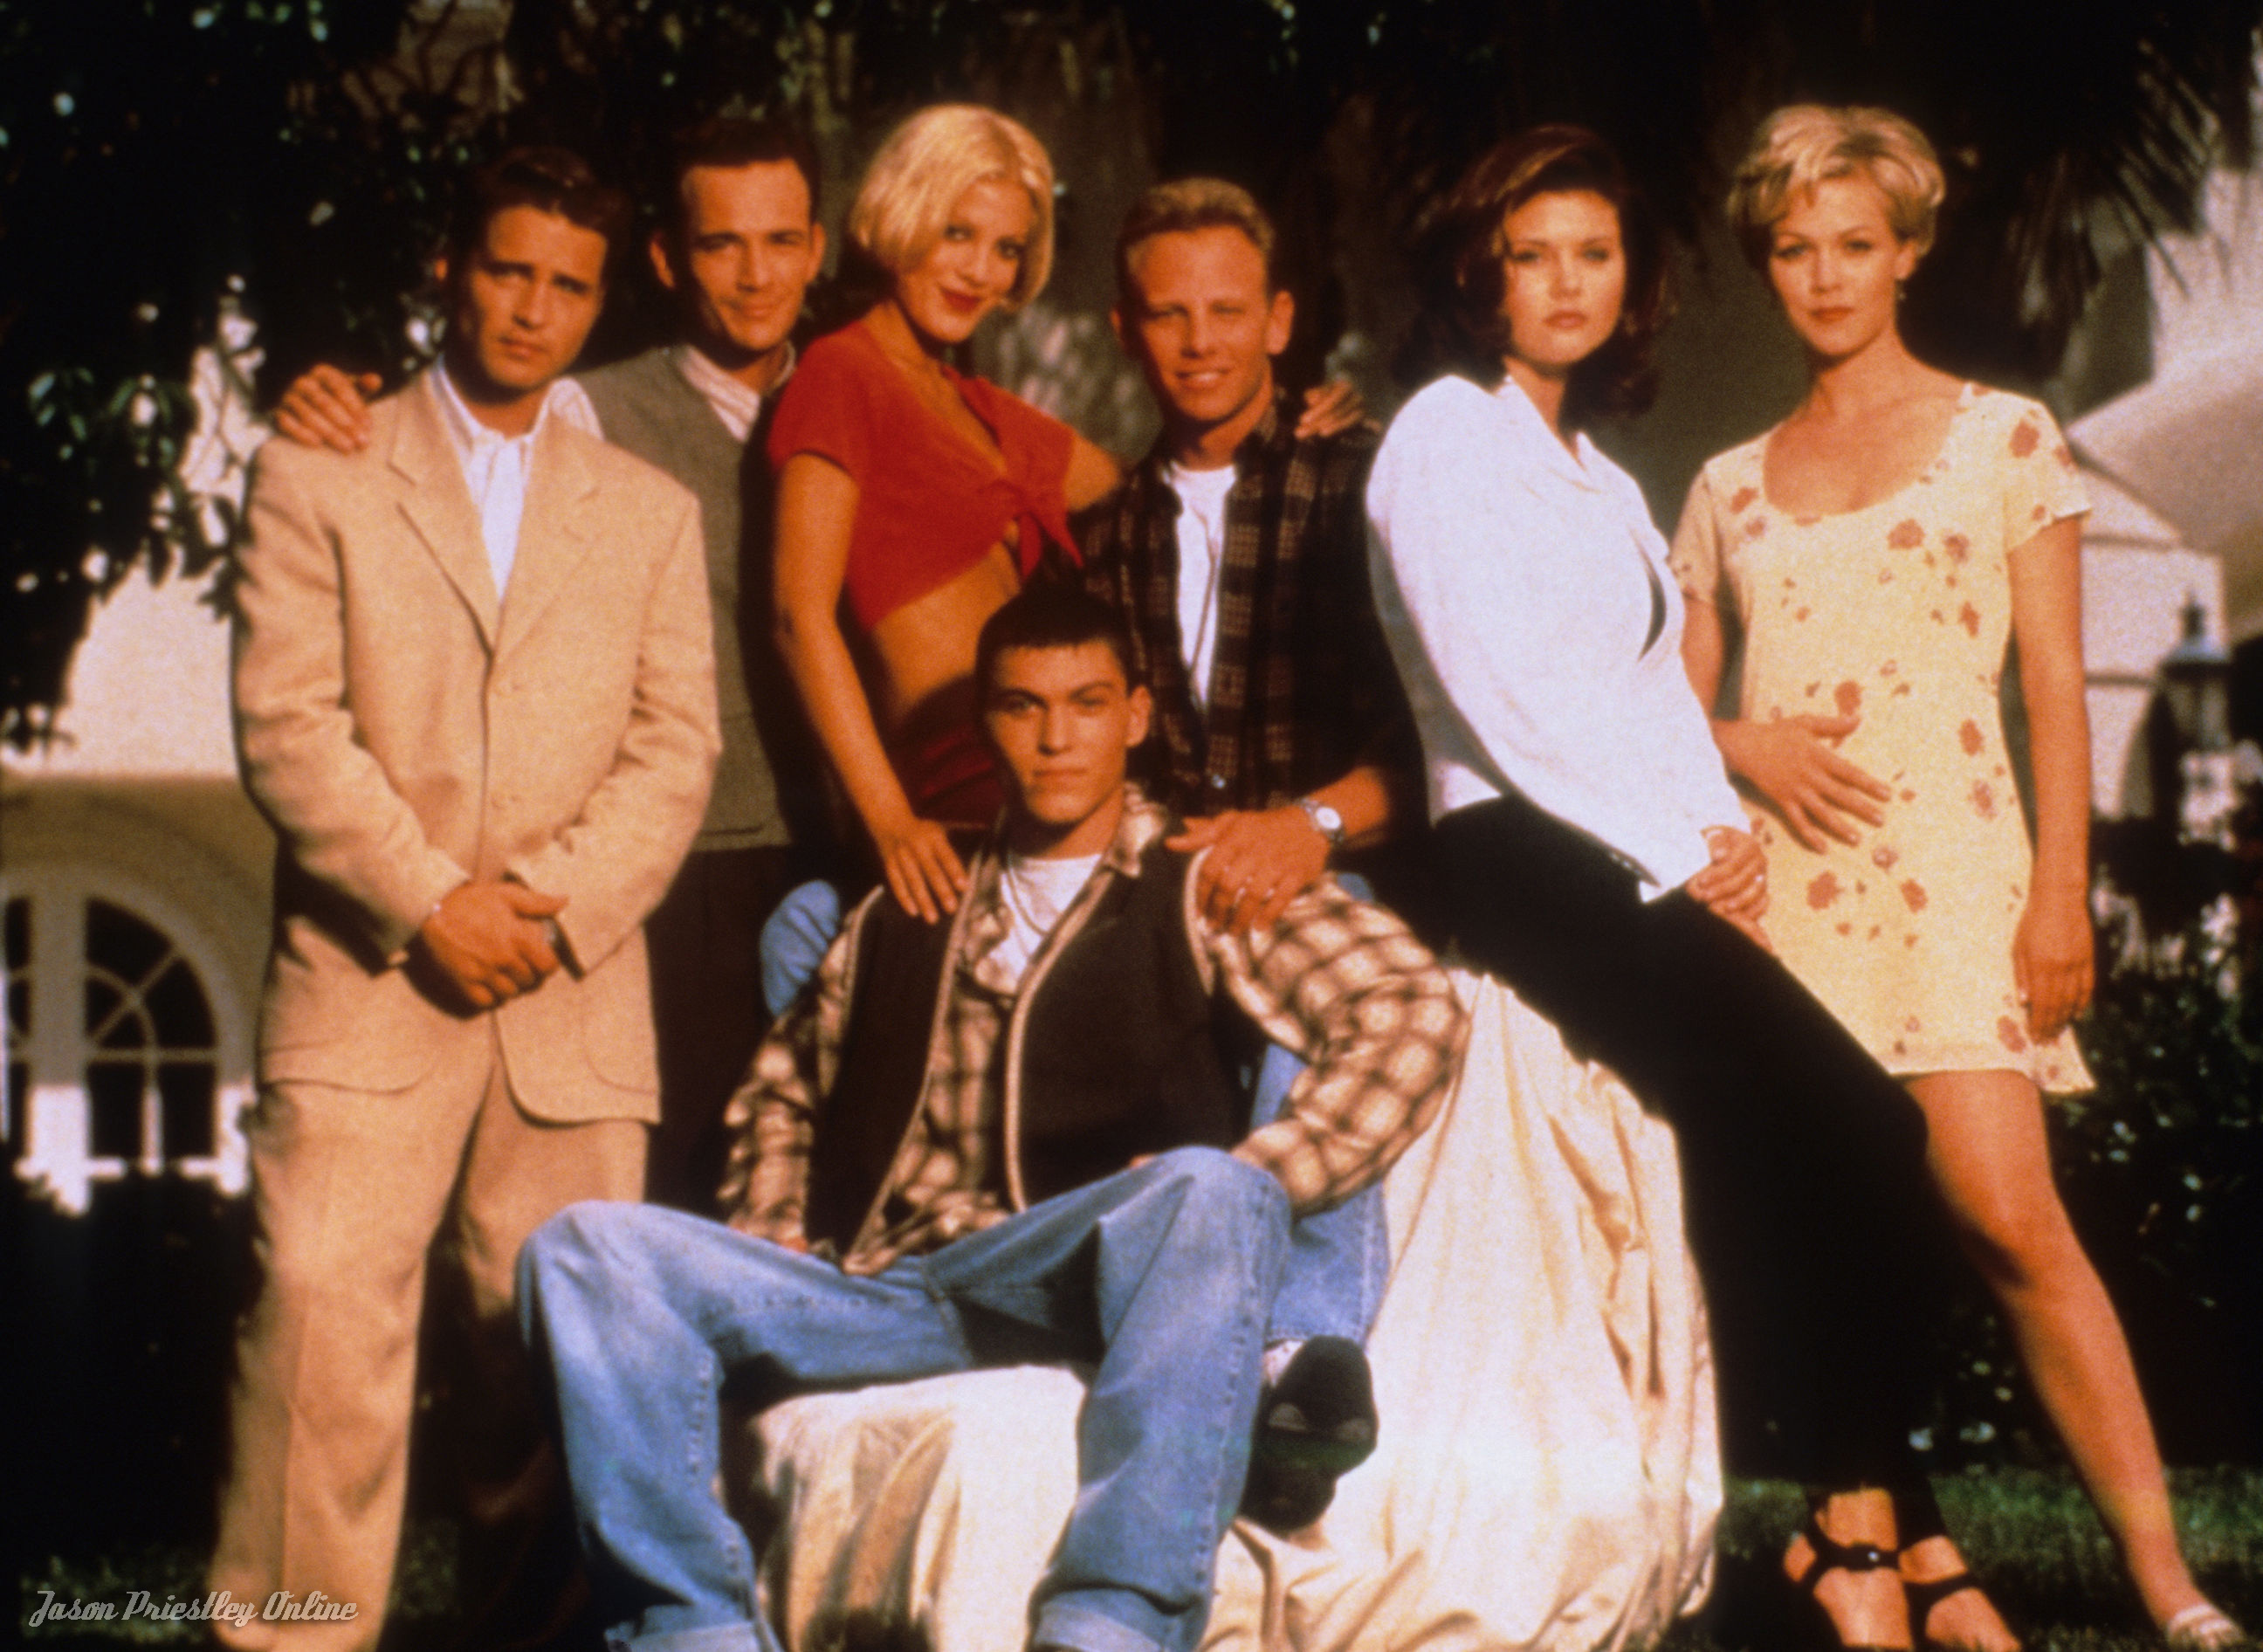 1000+ images about Beverly Hills, 90210 on Pinterest ...